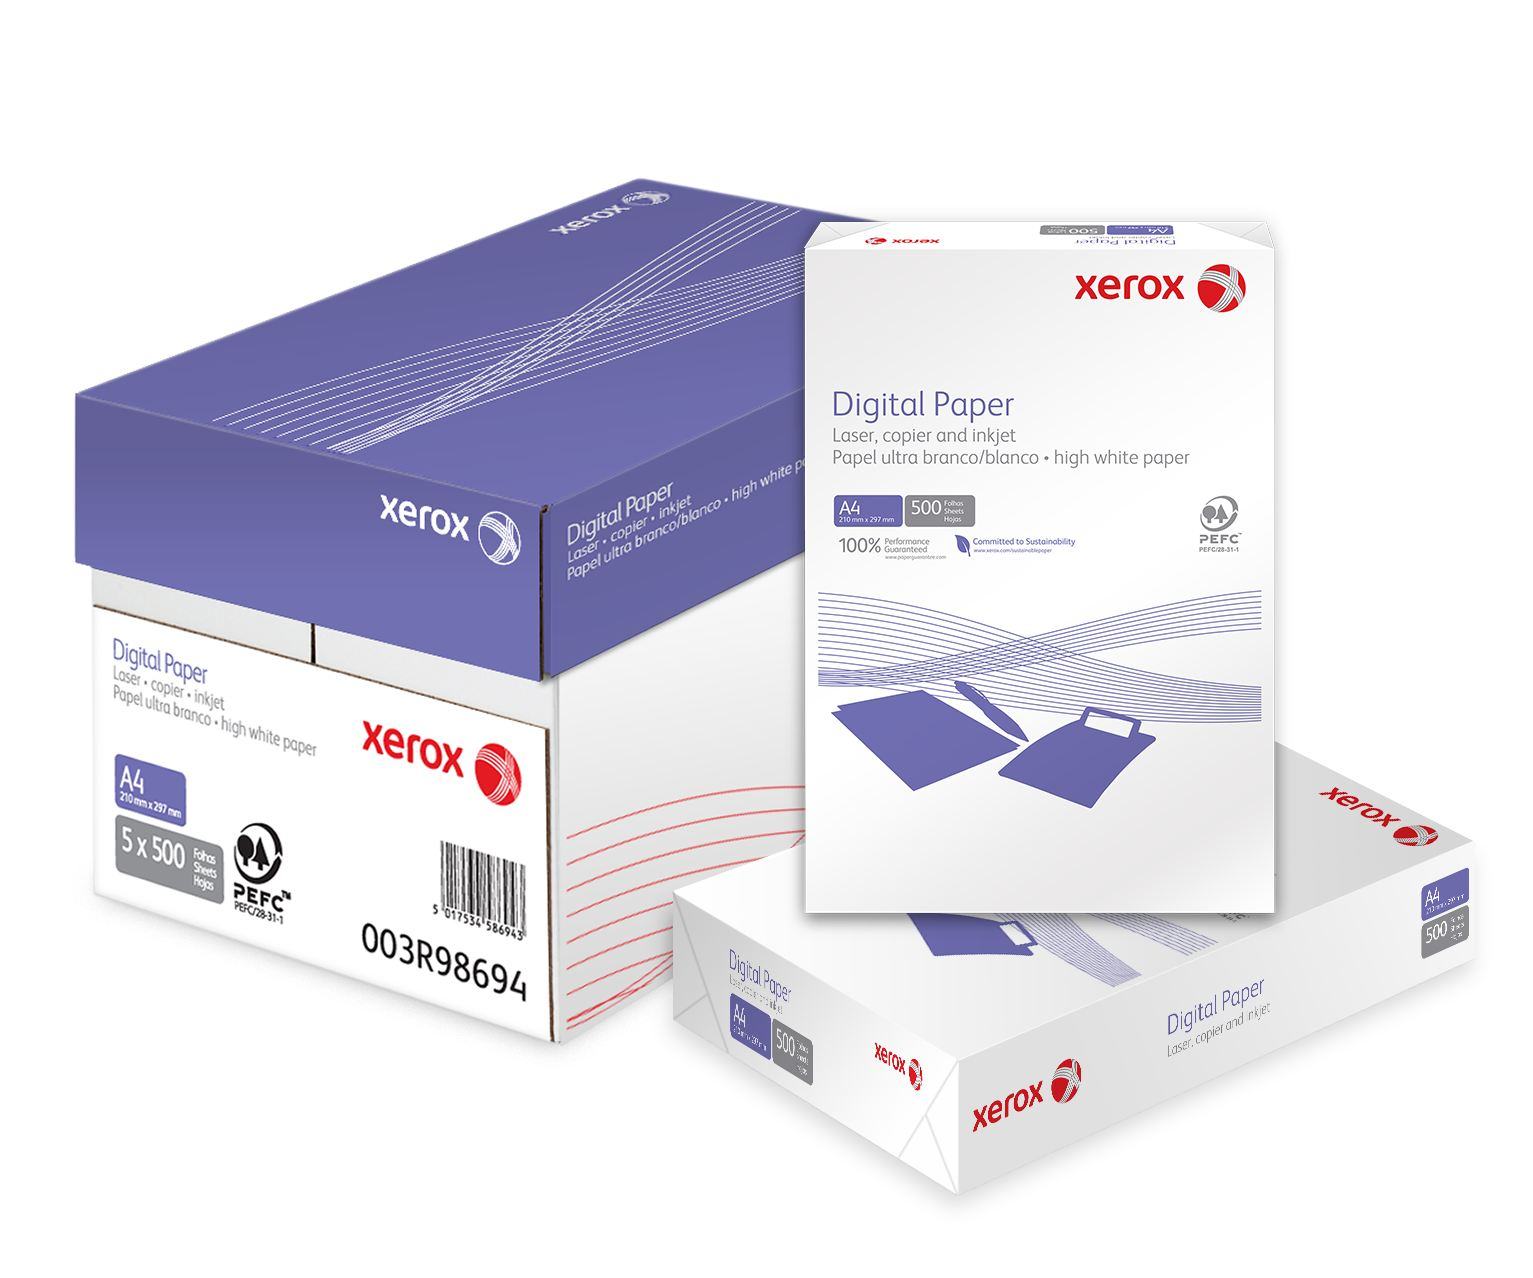 Xerox Brand A4 Copy Paper 80gsm/75gsm/70gsm Available for Sale